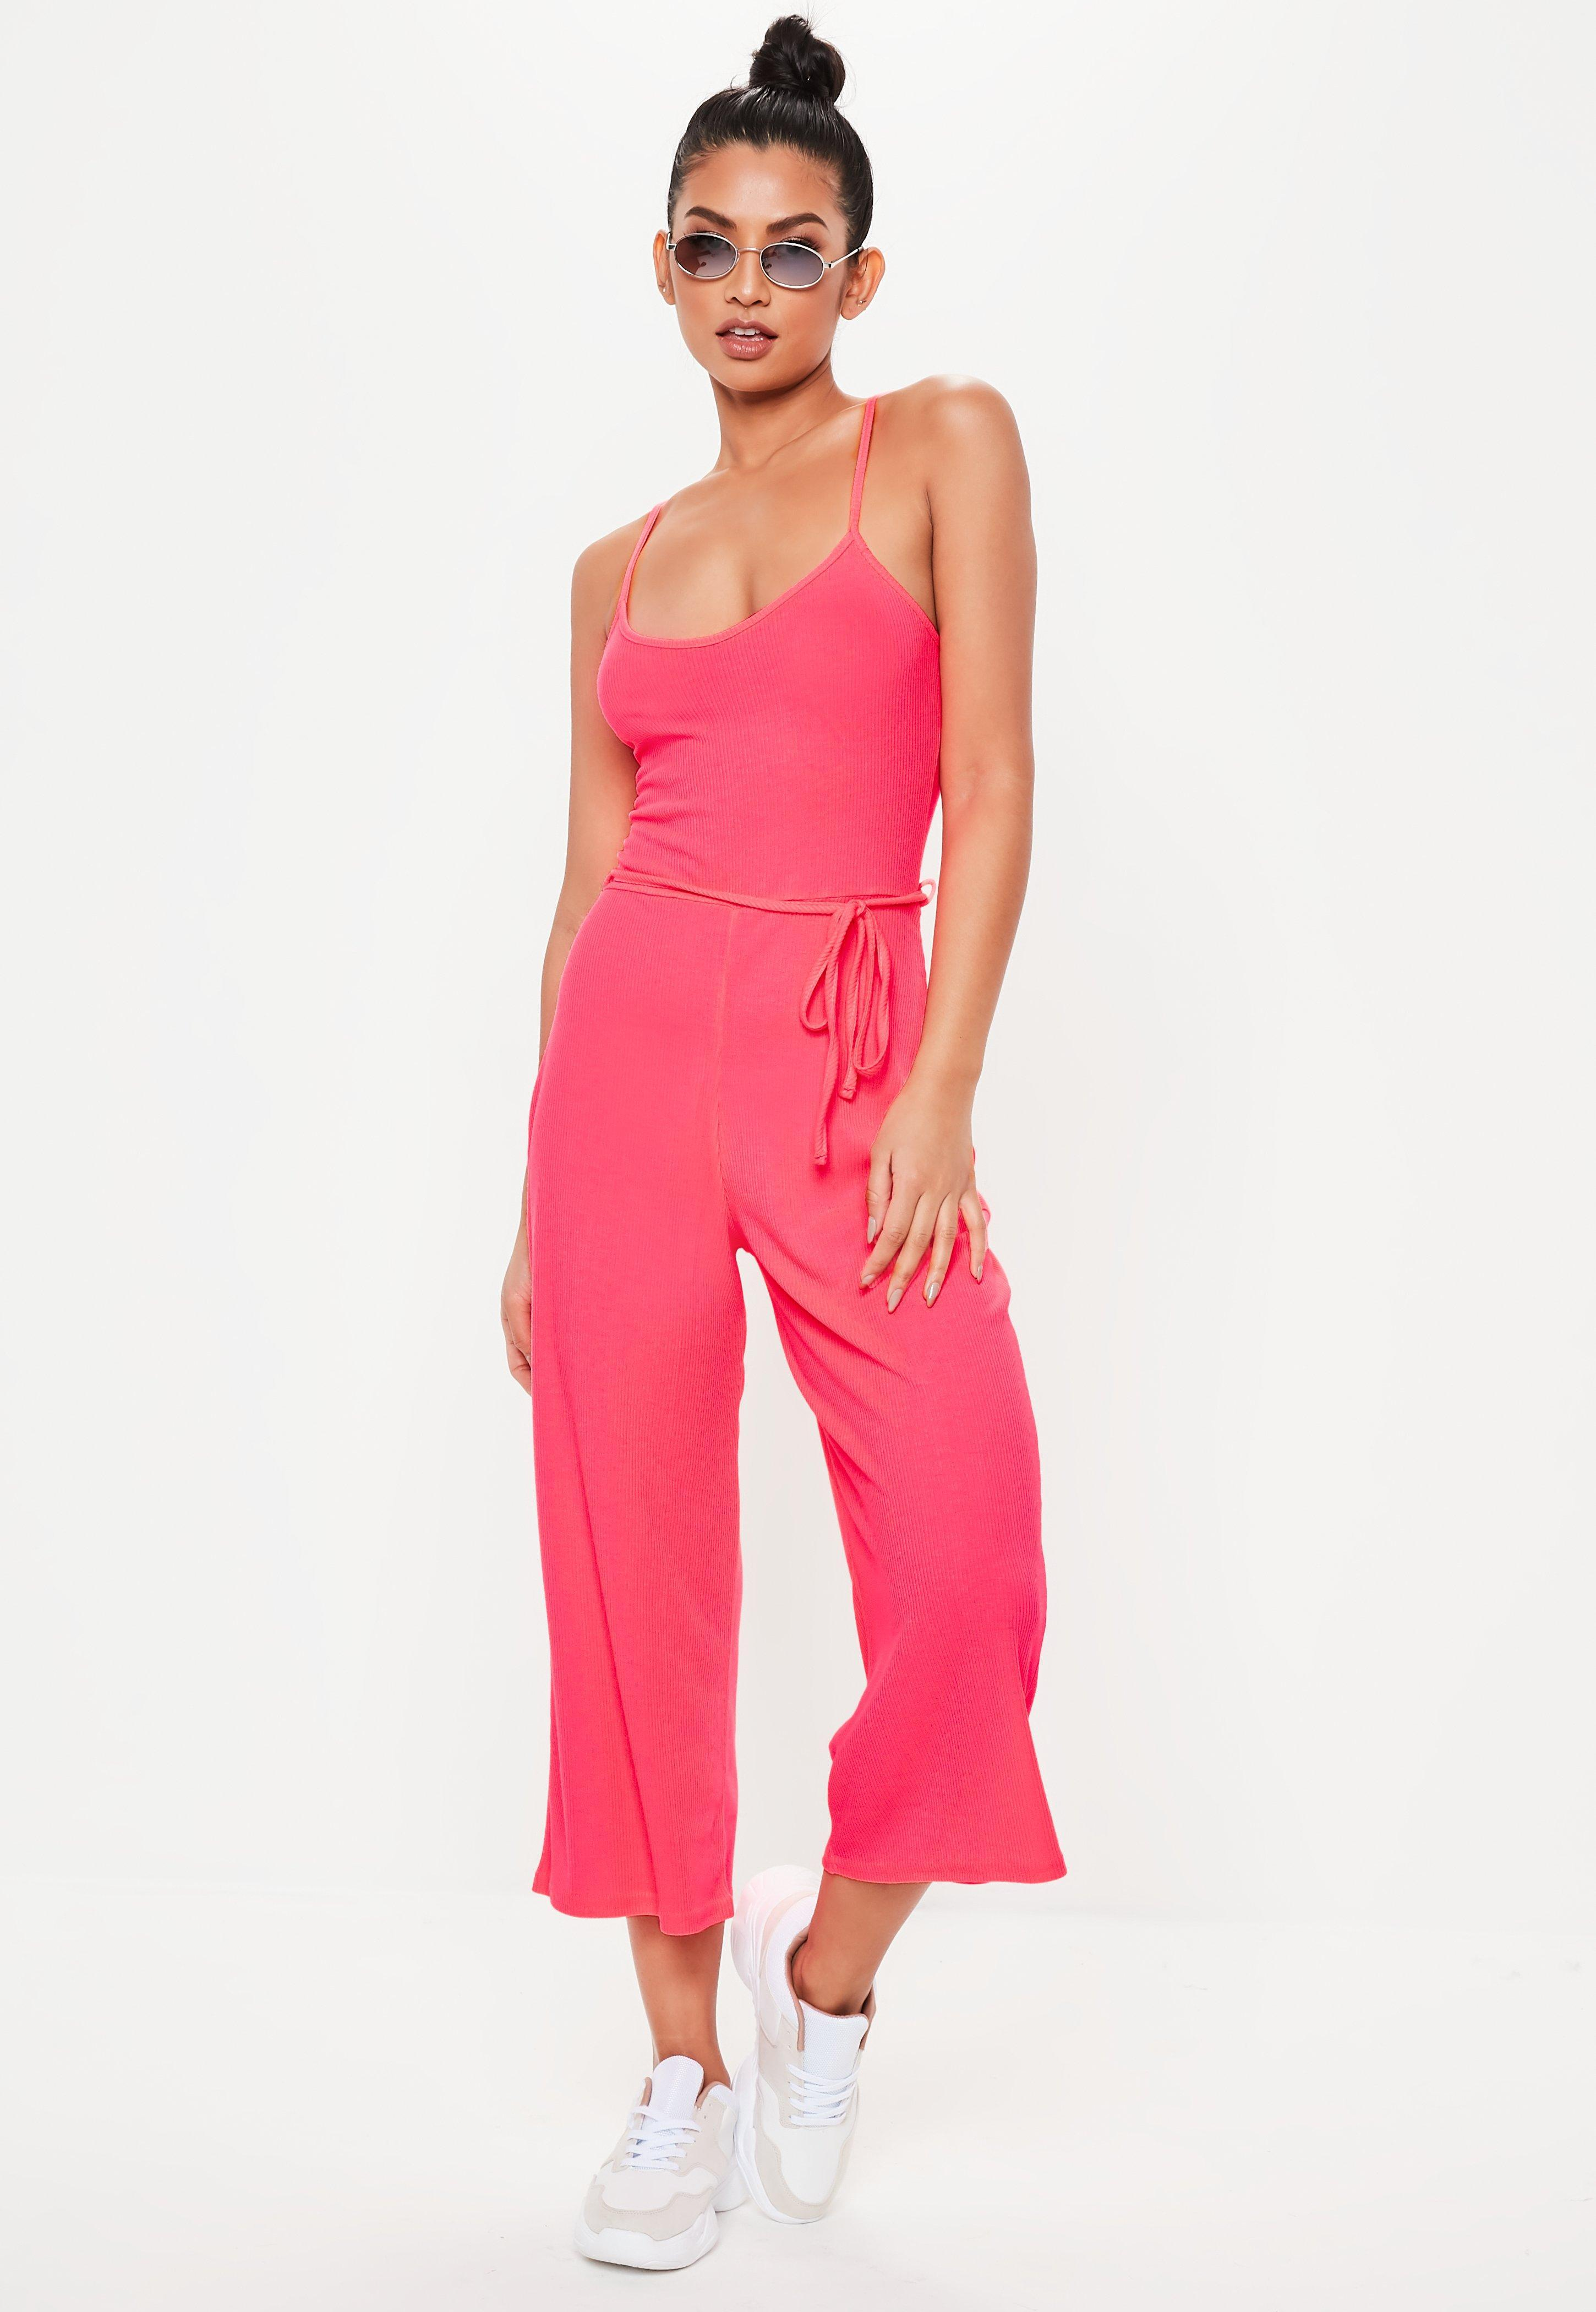 a8eae60e7 Lyst - Missguided Neon Pink Rib Cami Culotte Jumpsuit in Pink